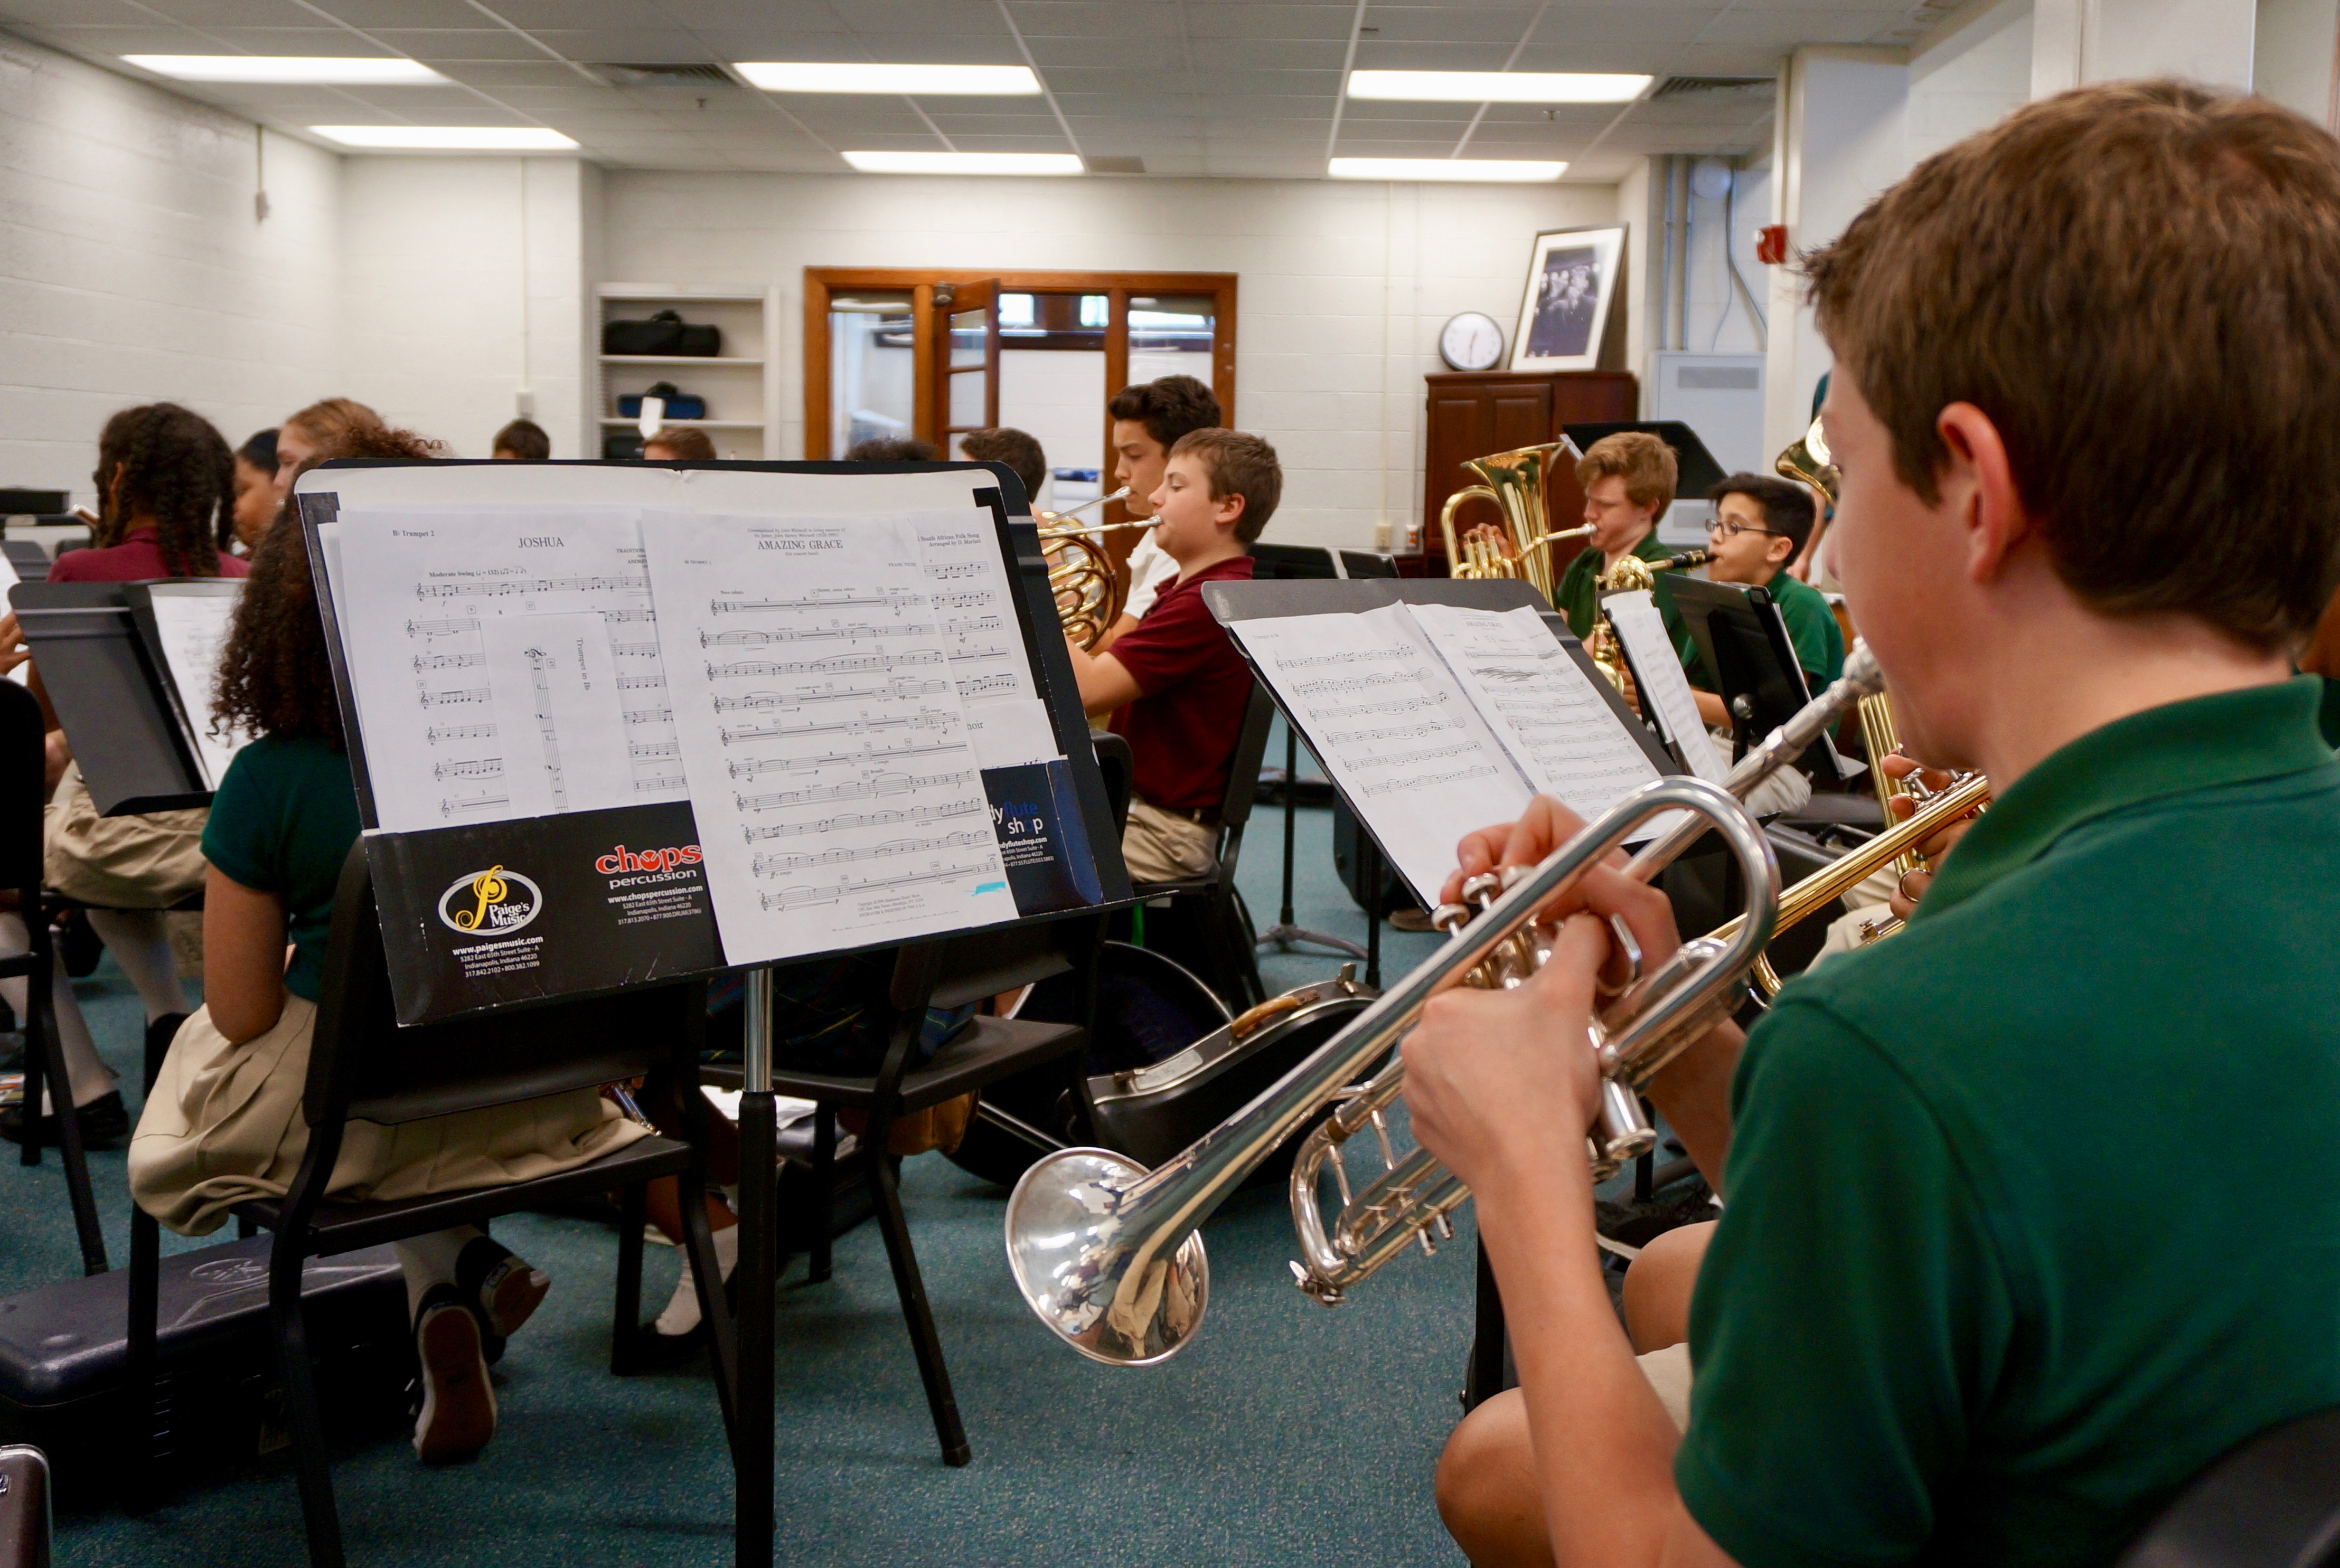 Middle school students practice the trumpet, tuba, French horn and other instruments in a classroom